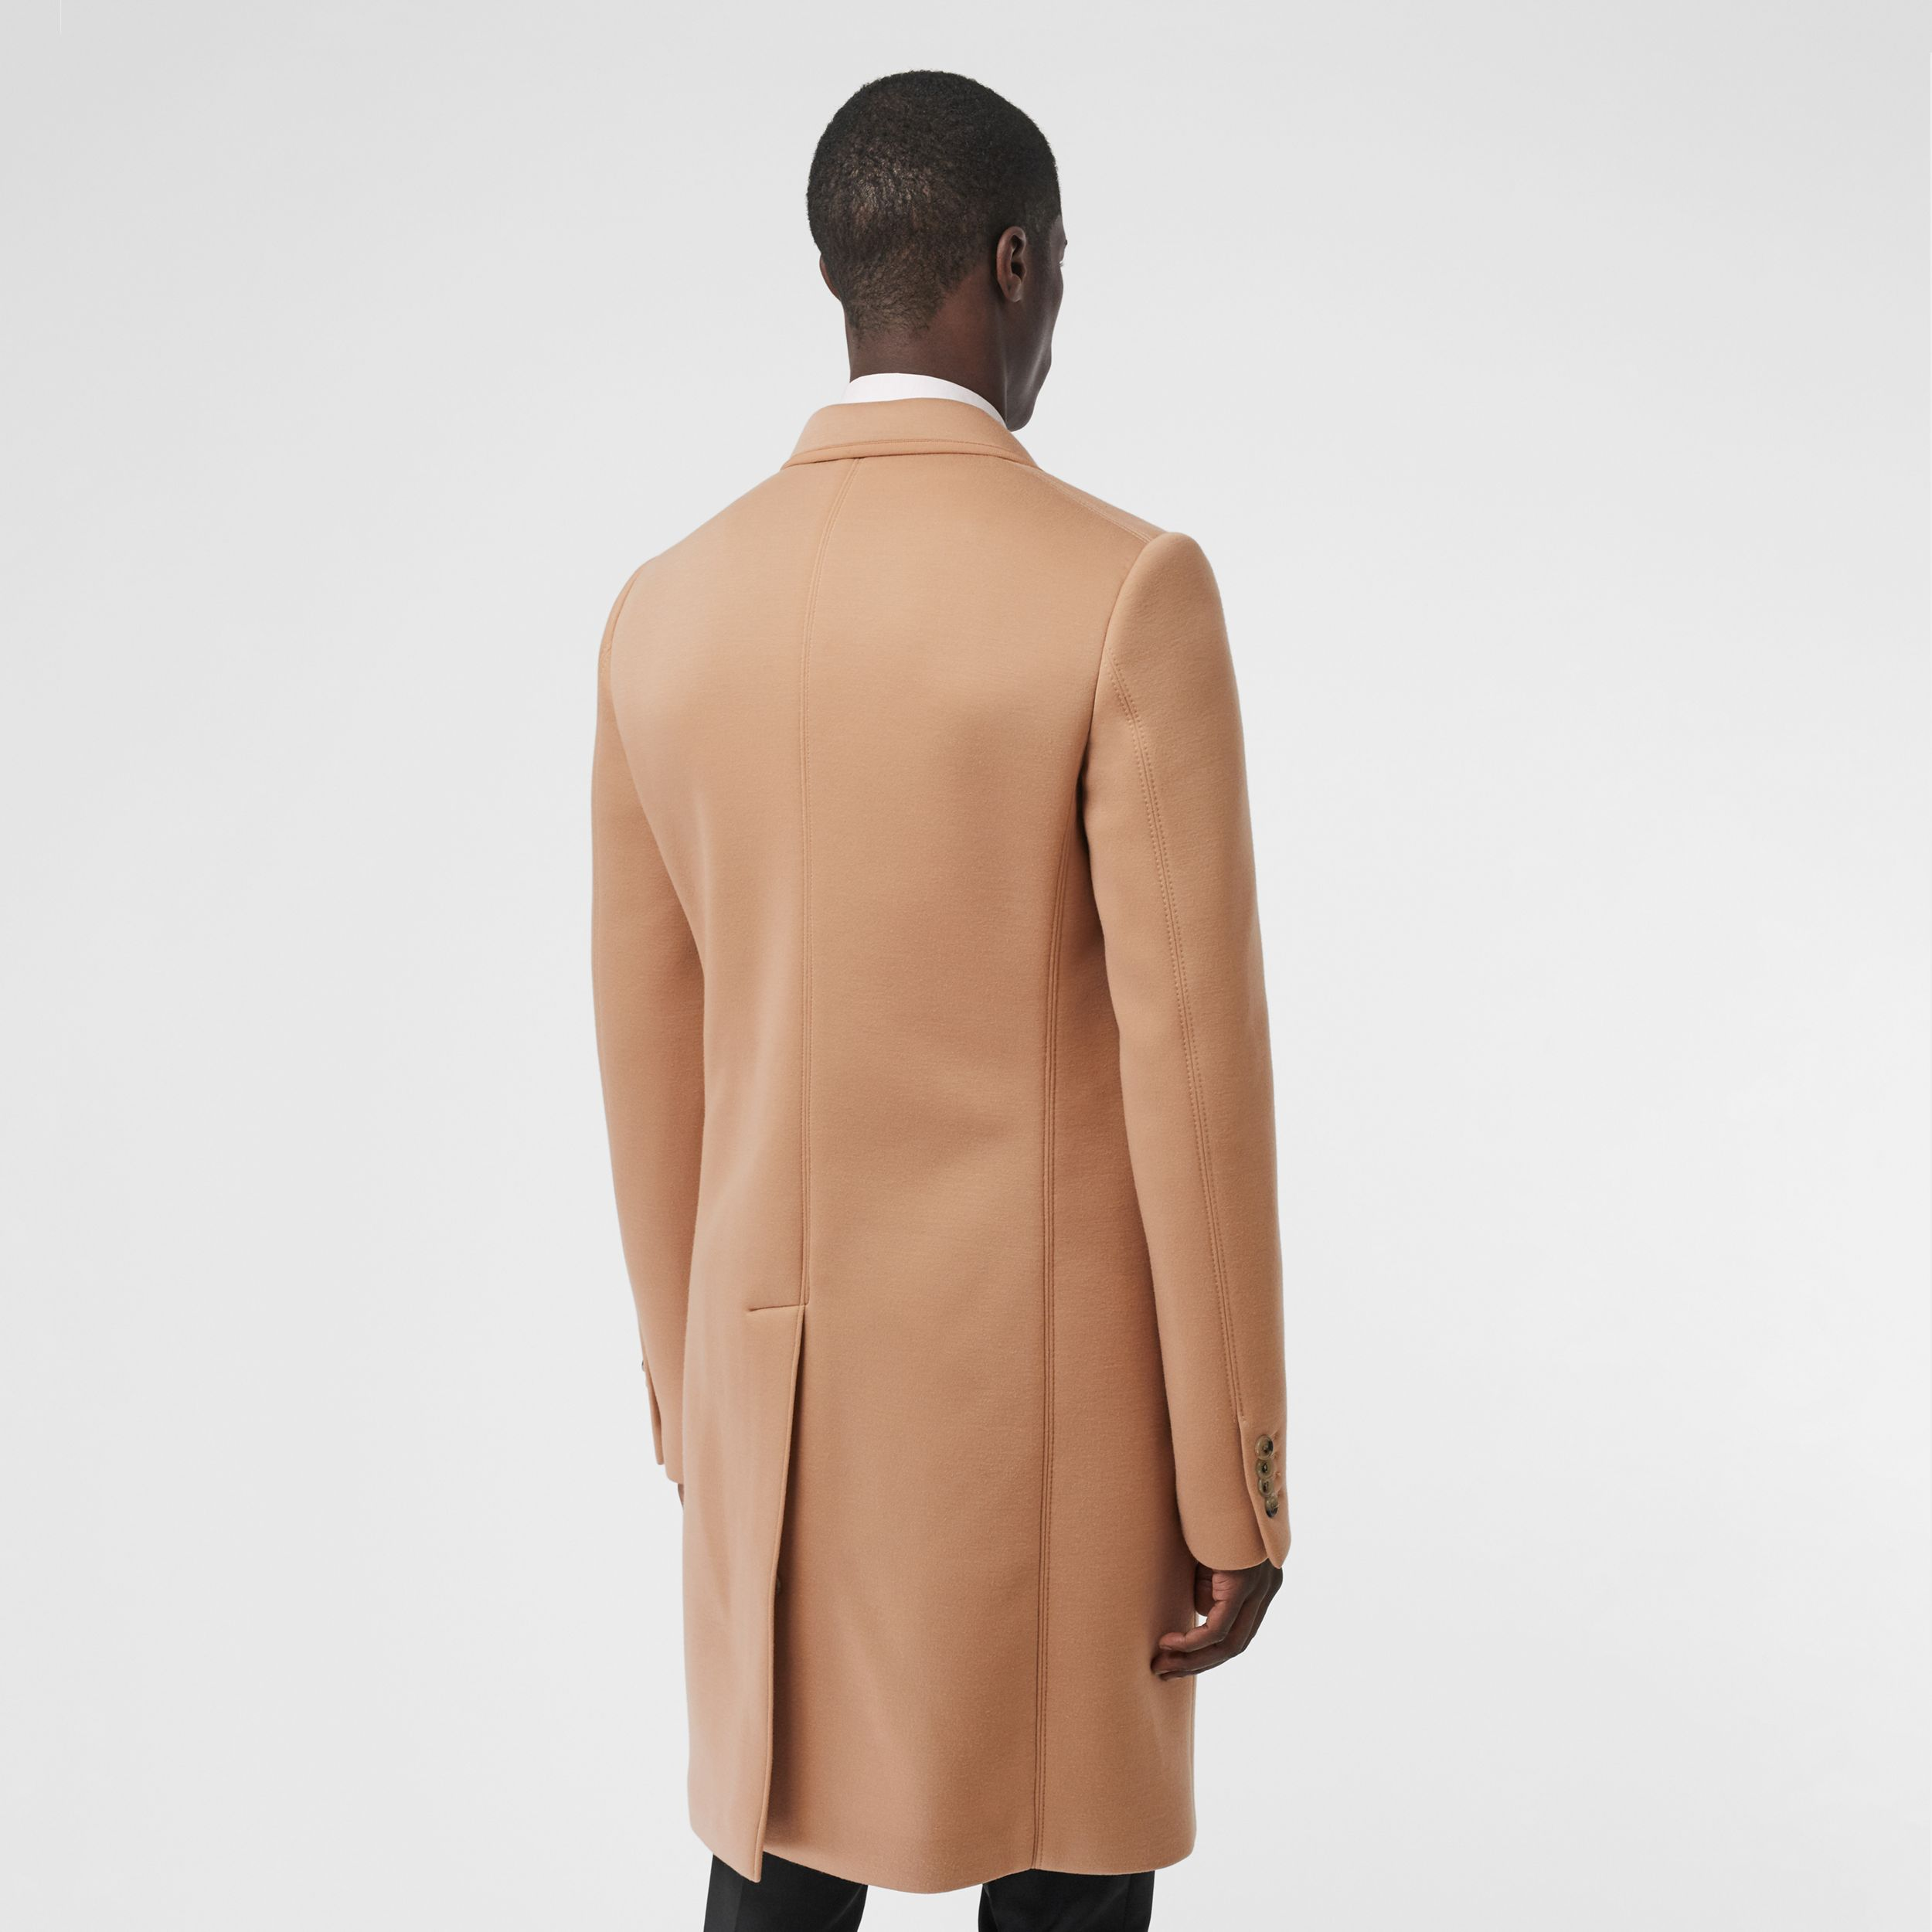 Neoprene Tailored Coat in Beige | Burberry - 3